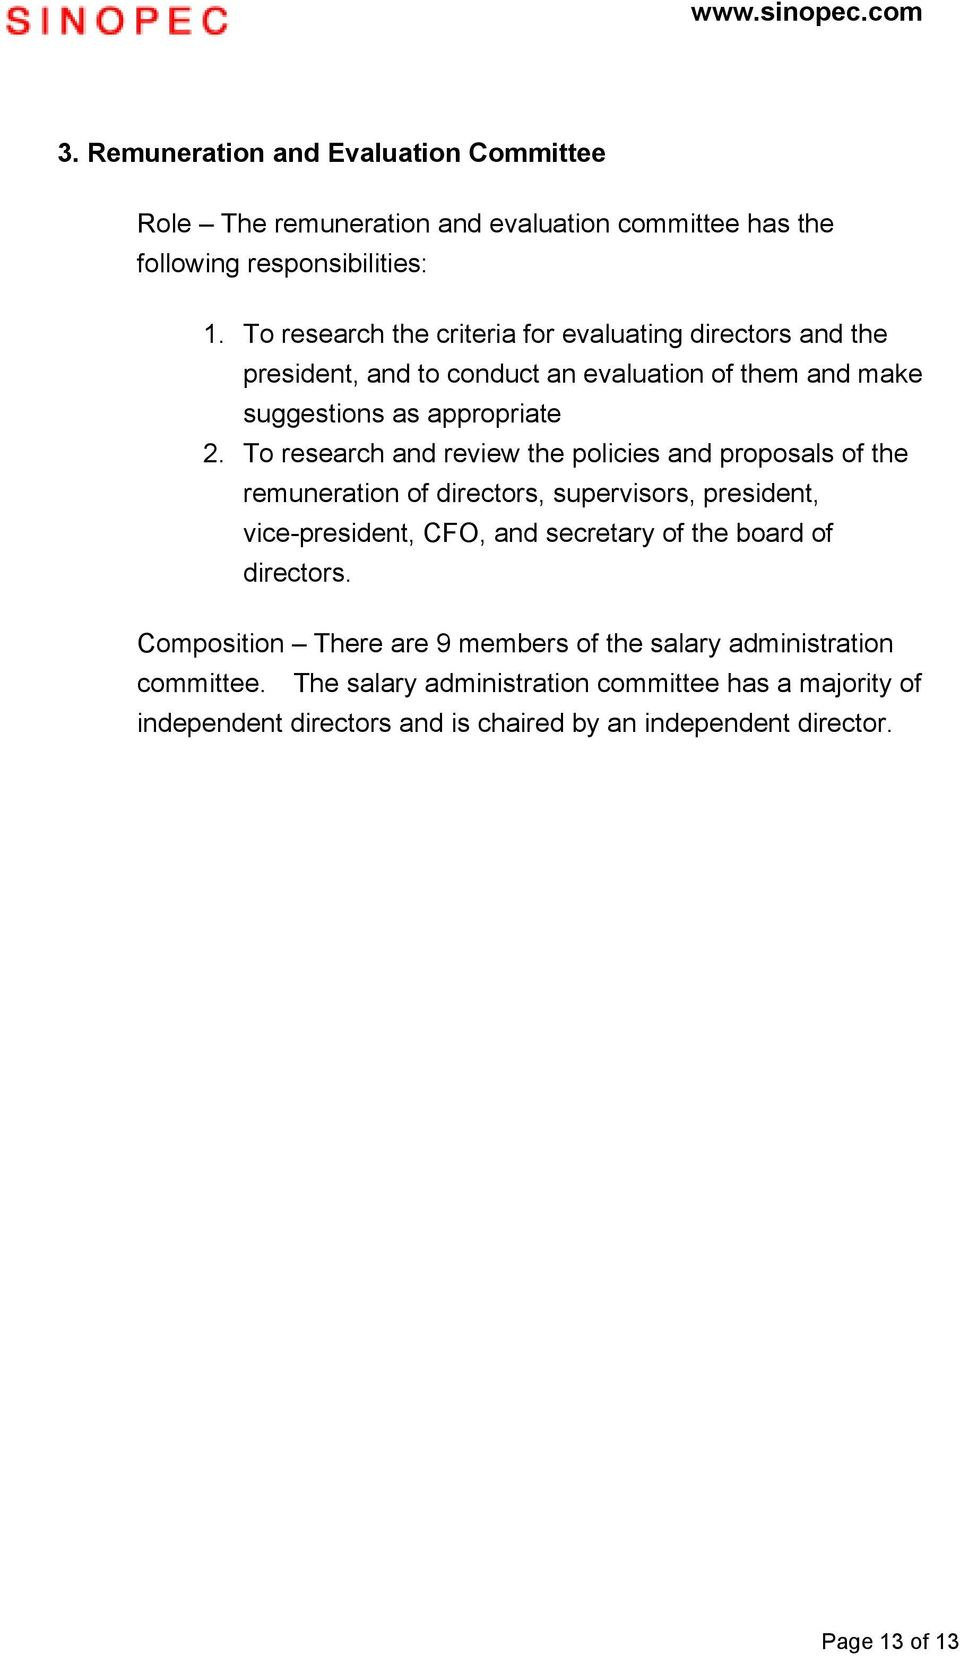 To research and review the policies and proposals of the remuneration of directors, supervisors, president, vice-president, CFO, and secretary of the board of